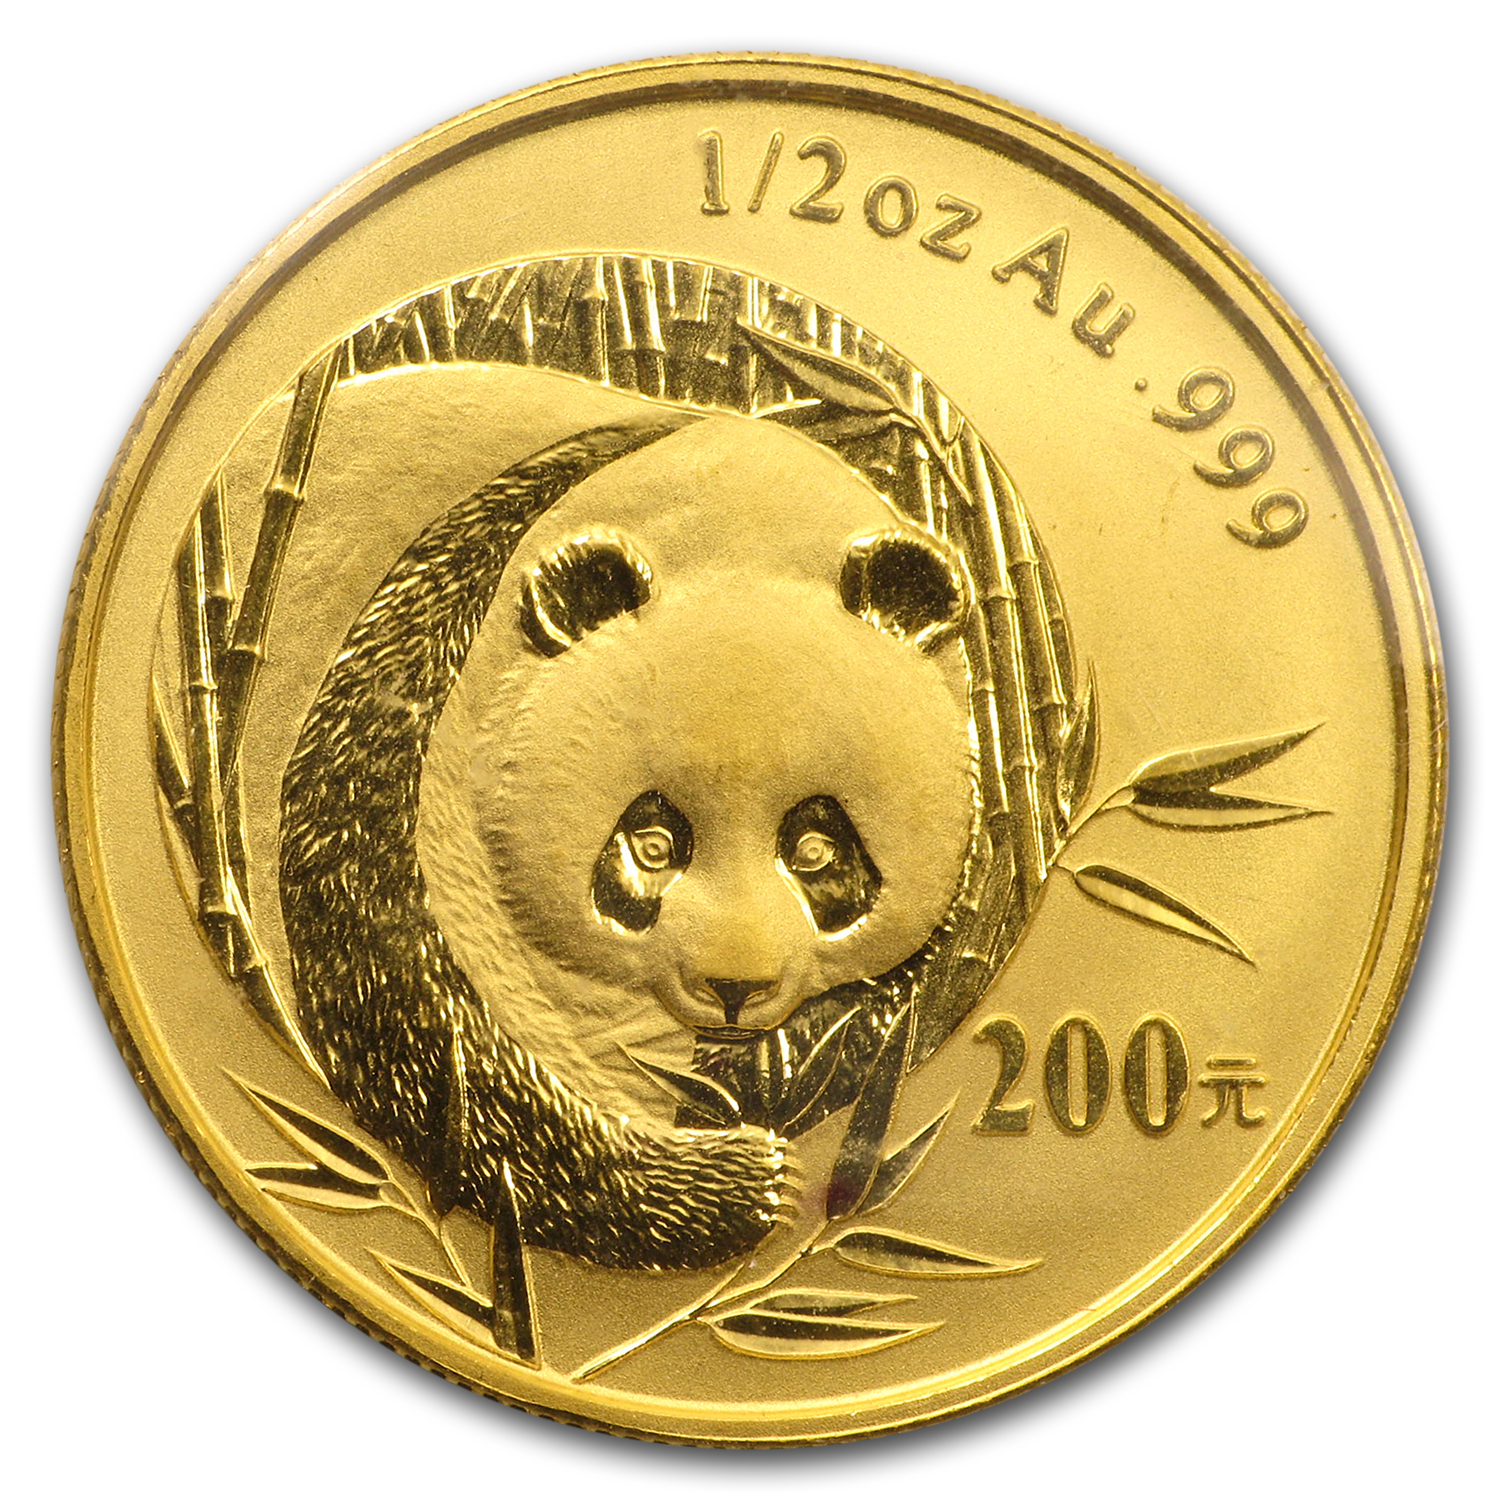 2003 China 1/2 oz Gold Panda BU (Sealed)